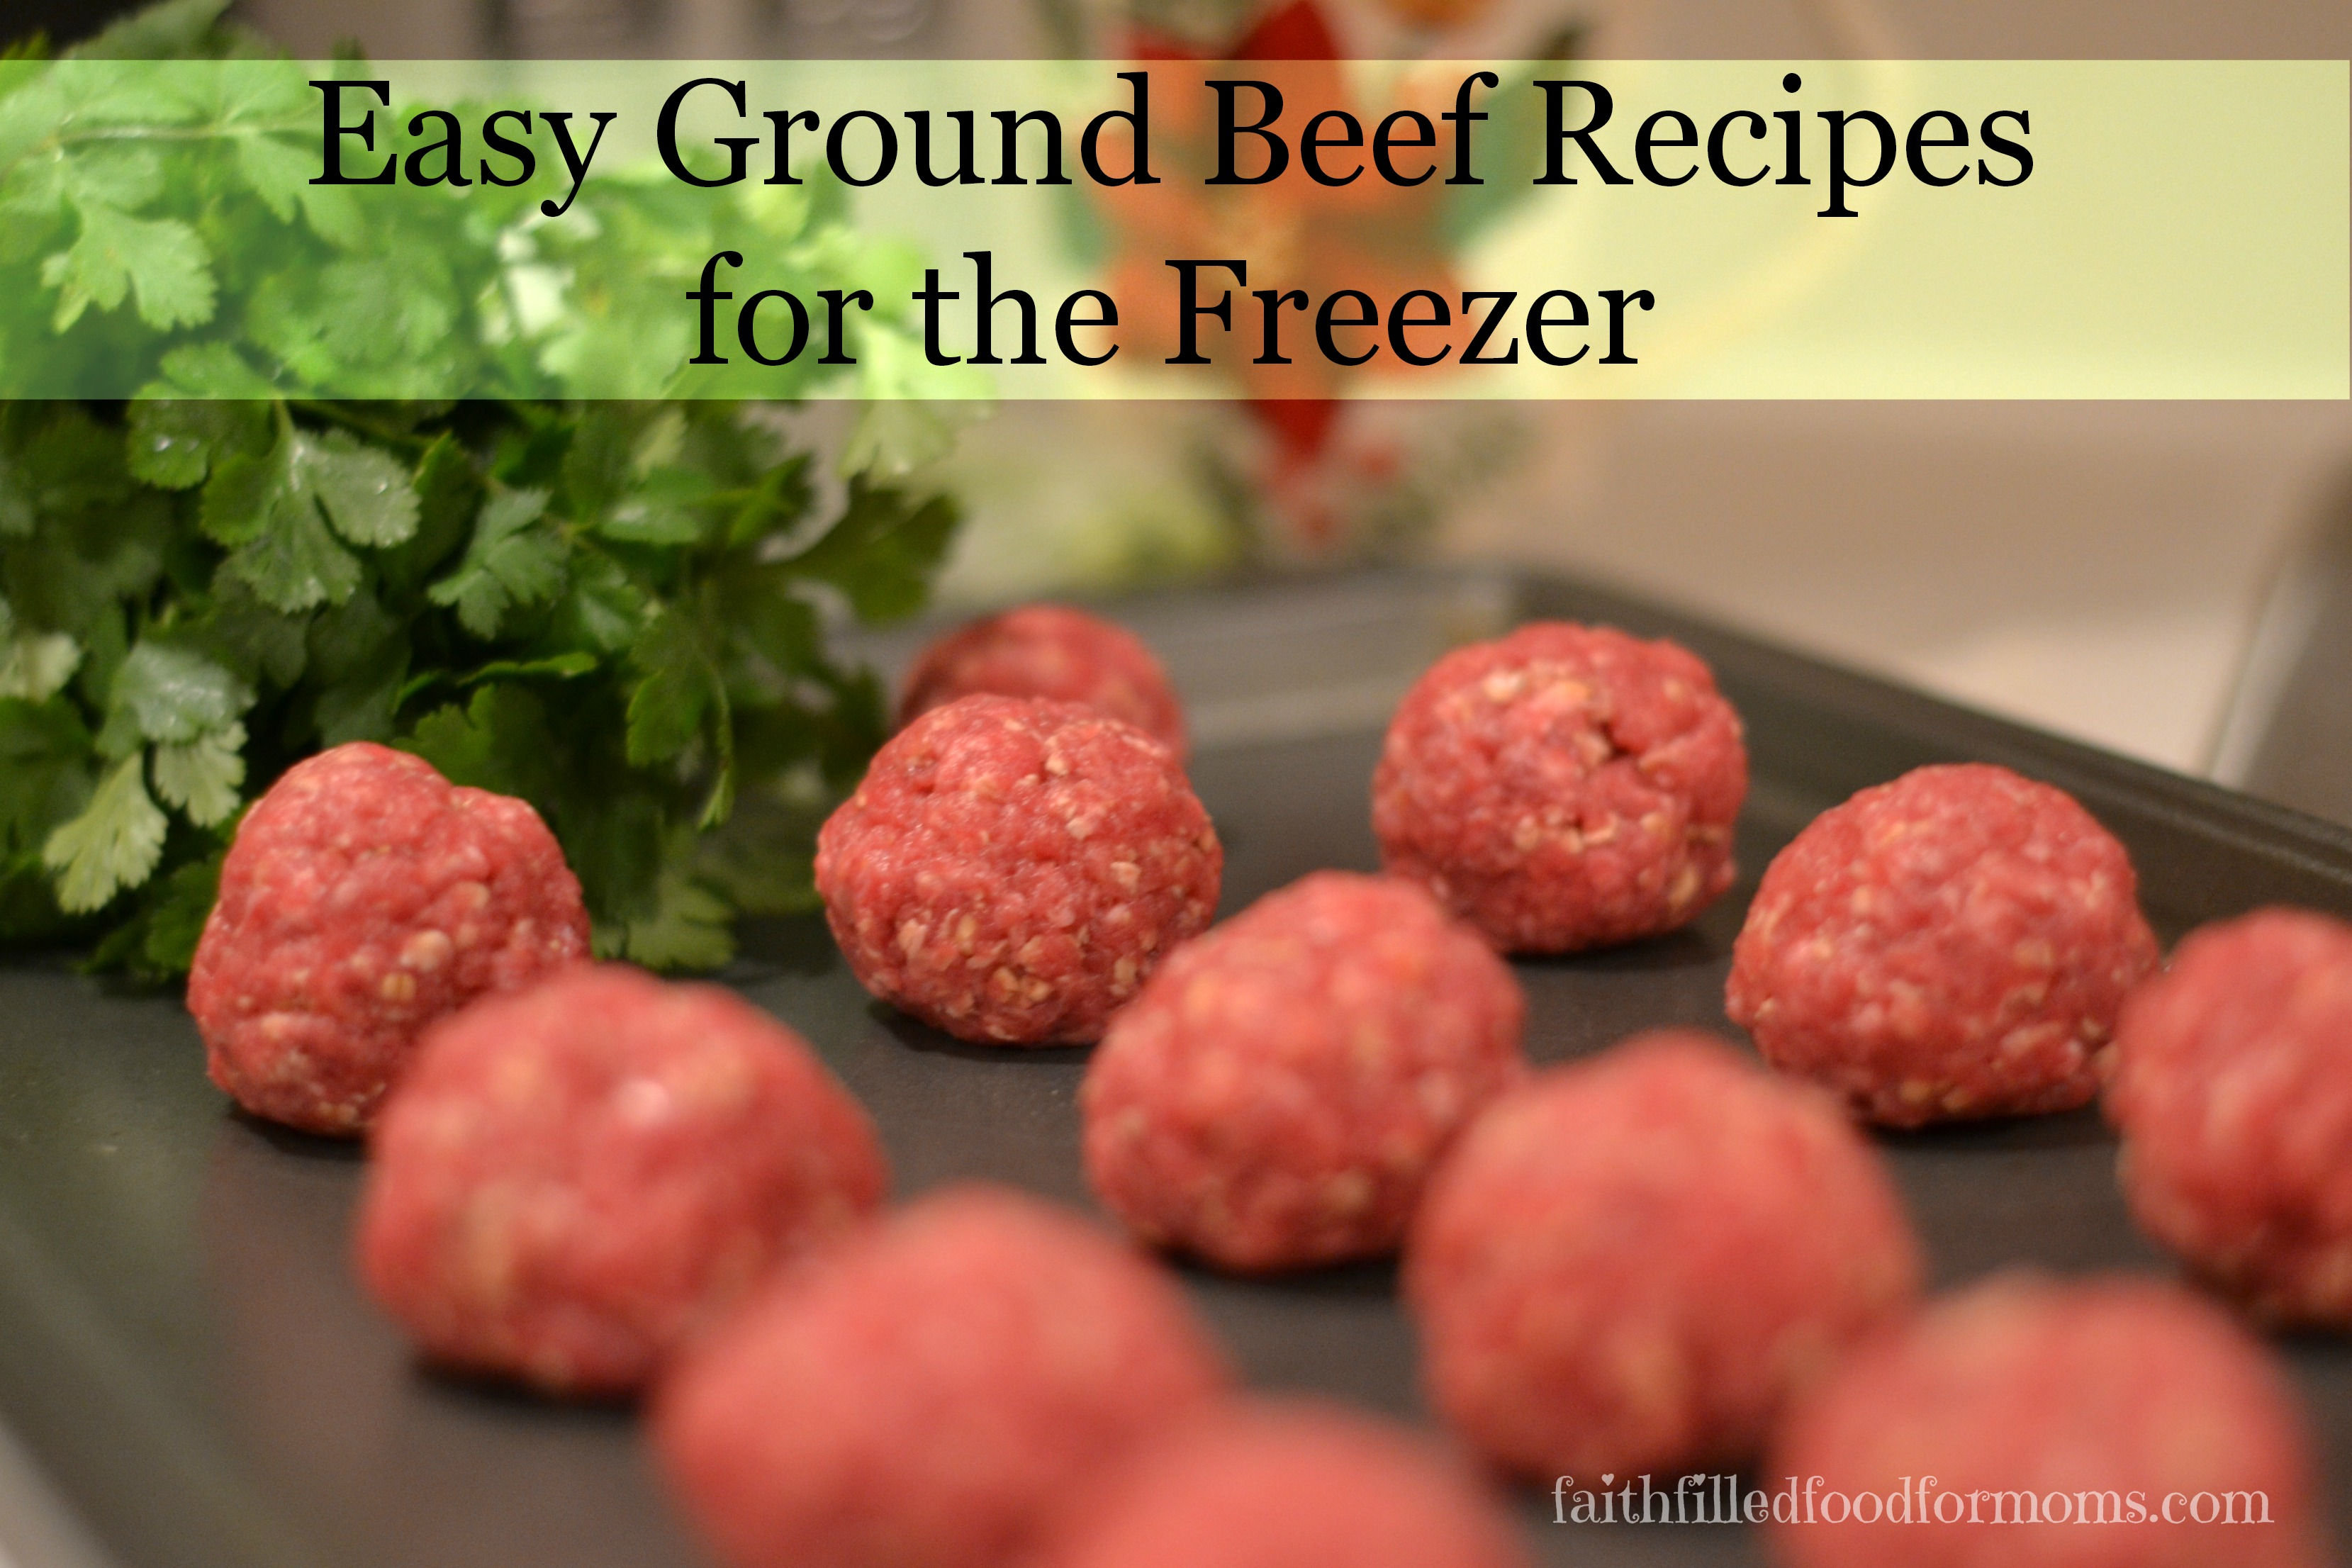 Easy Ground Beef Recipes for the Freezer